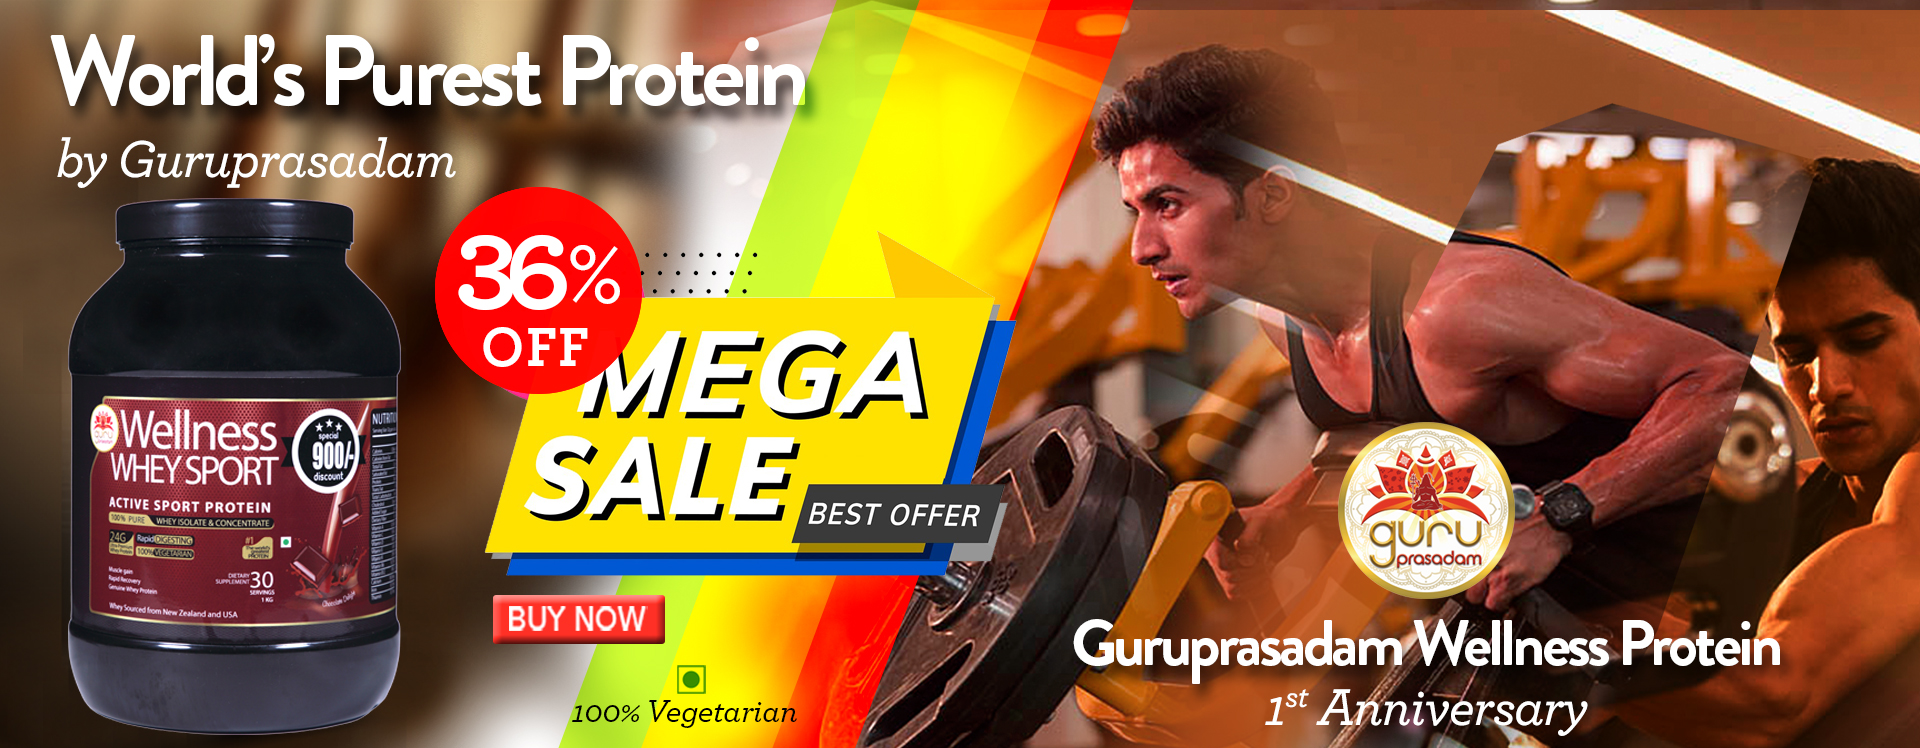 Purest Protein From Guruprasadam